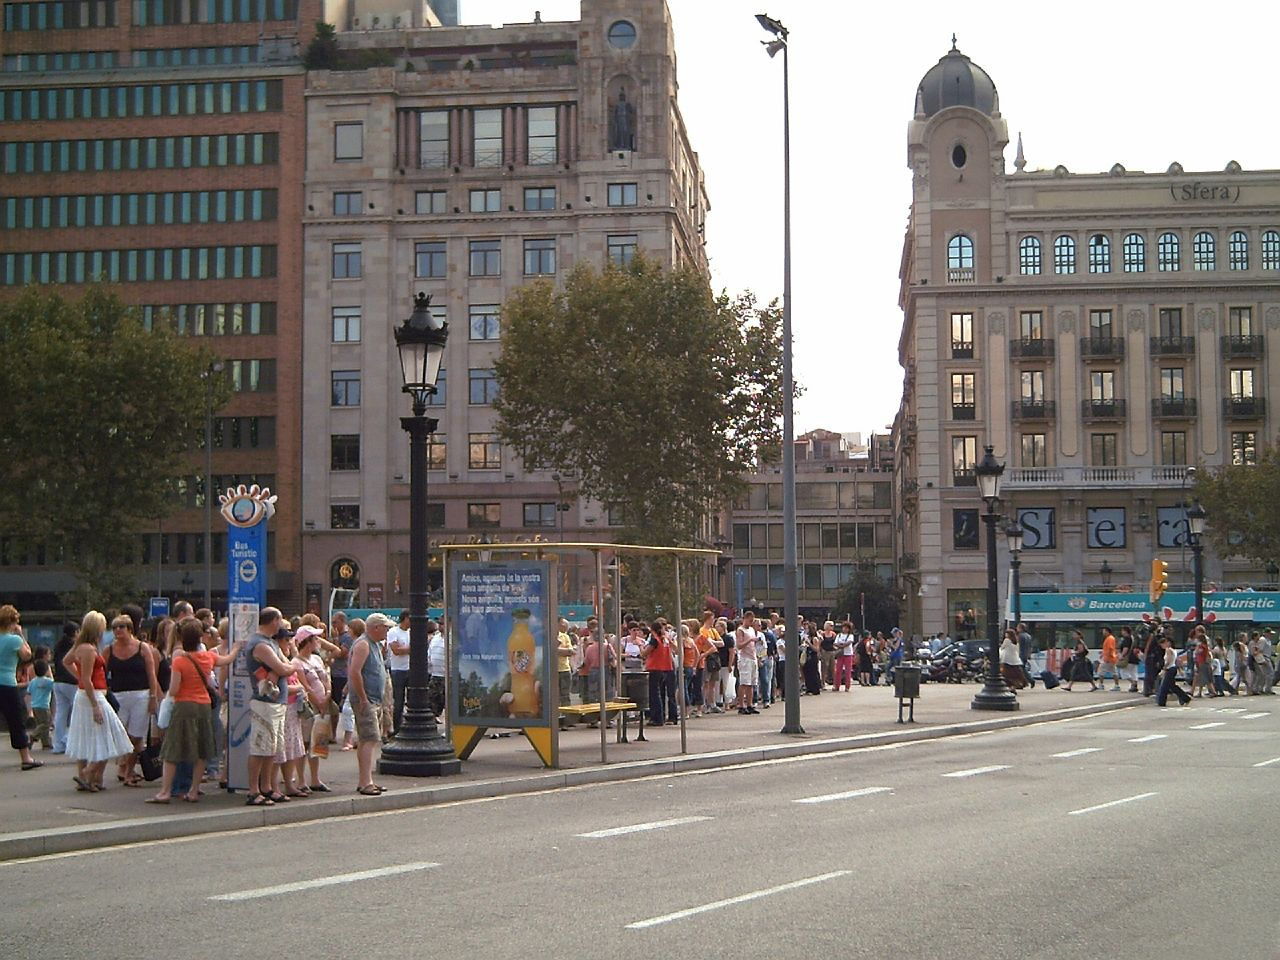 Weekend, Barcelona: Turistic Bus Stop in Plaza Catalunya